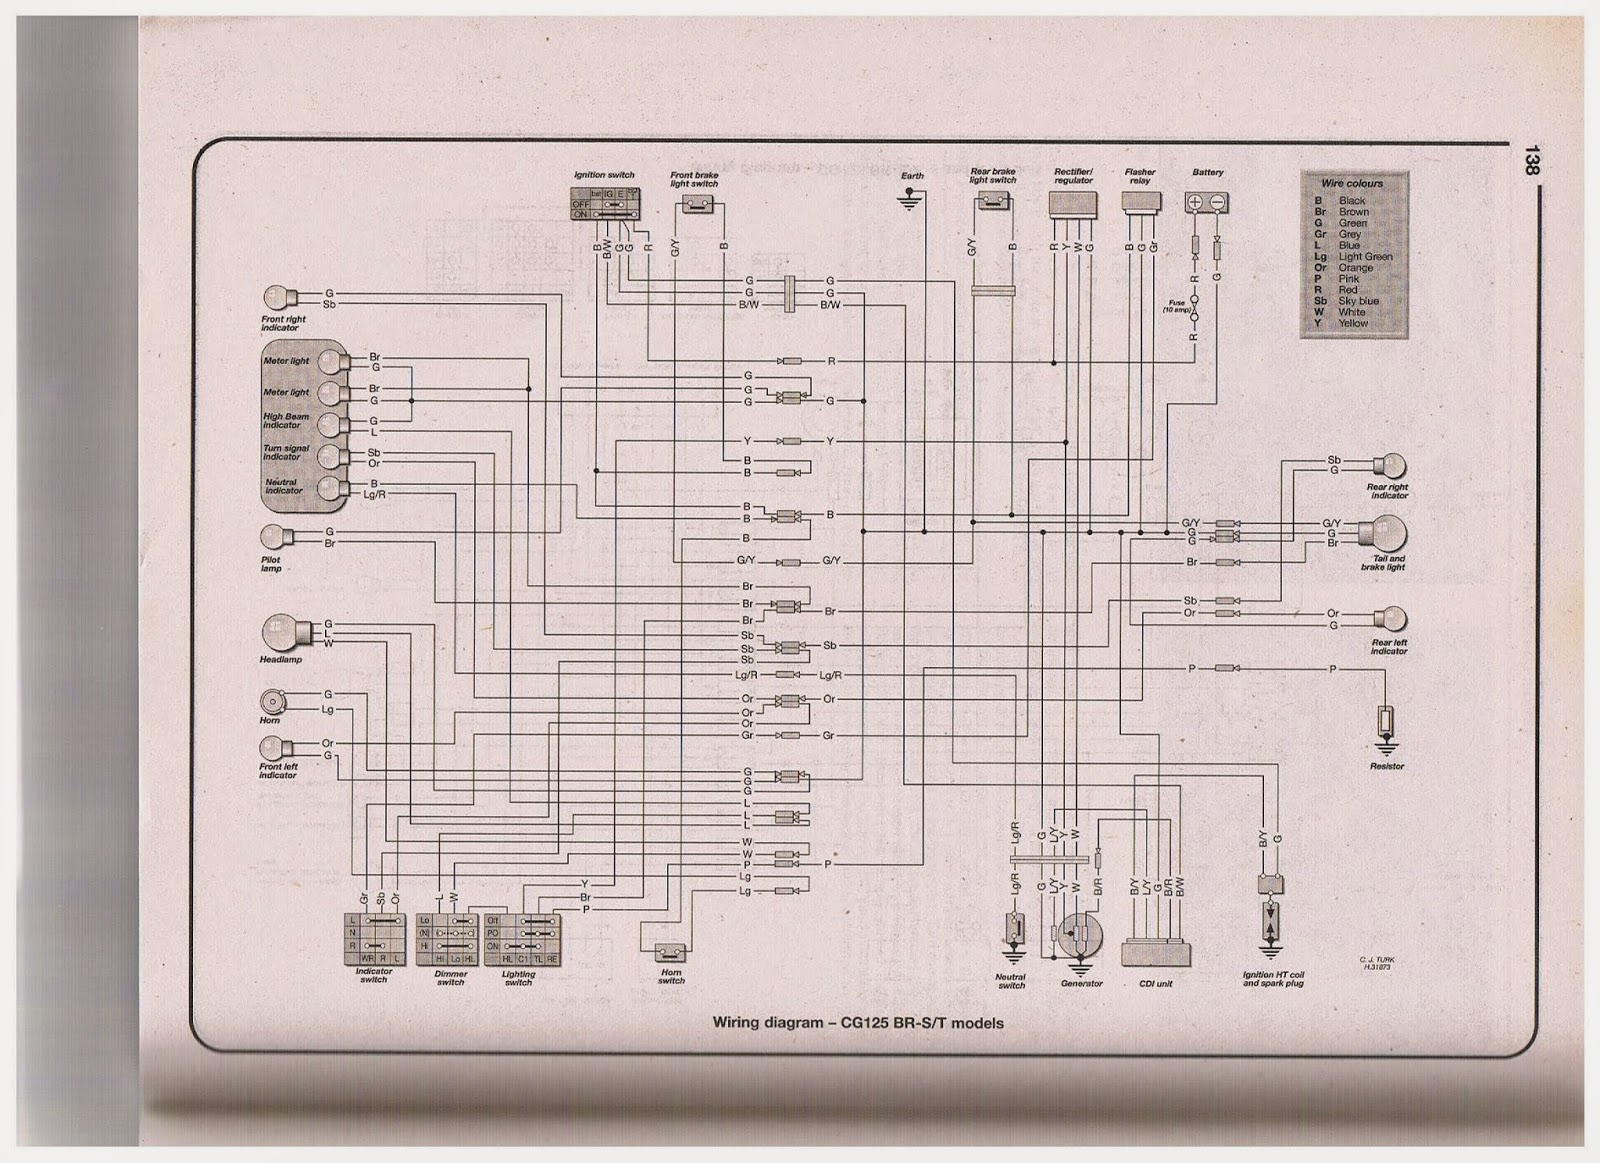 hight resolution of 1990 honda 125 wiring schematic wiring libraryhonda cg 125 wiring diagram